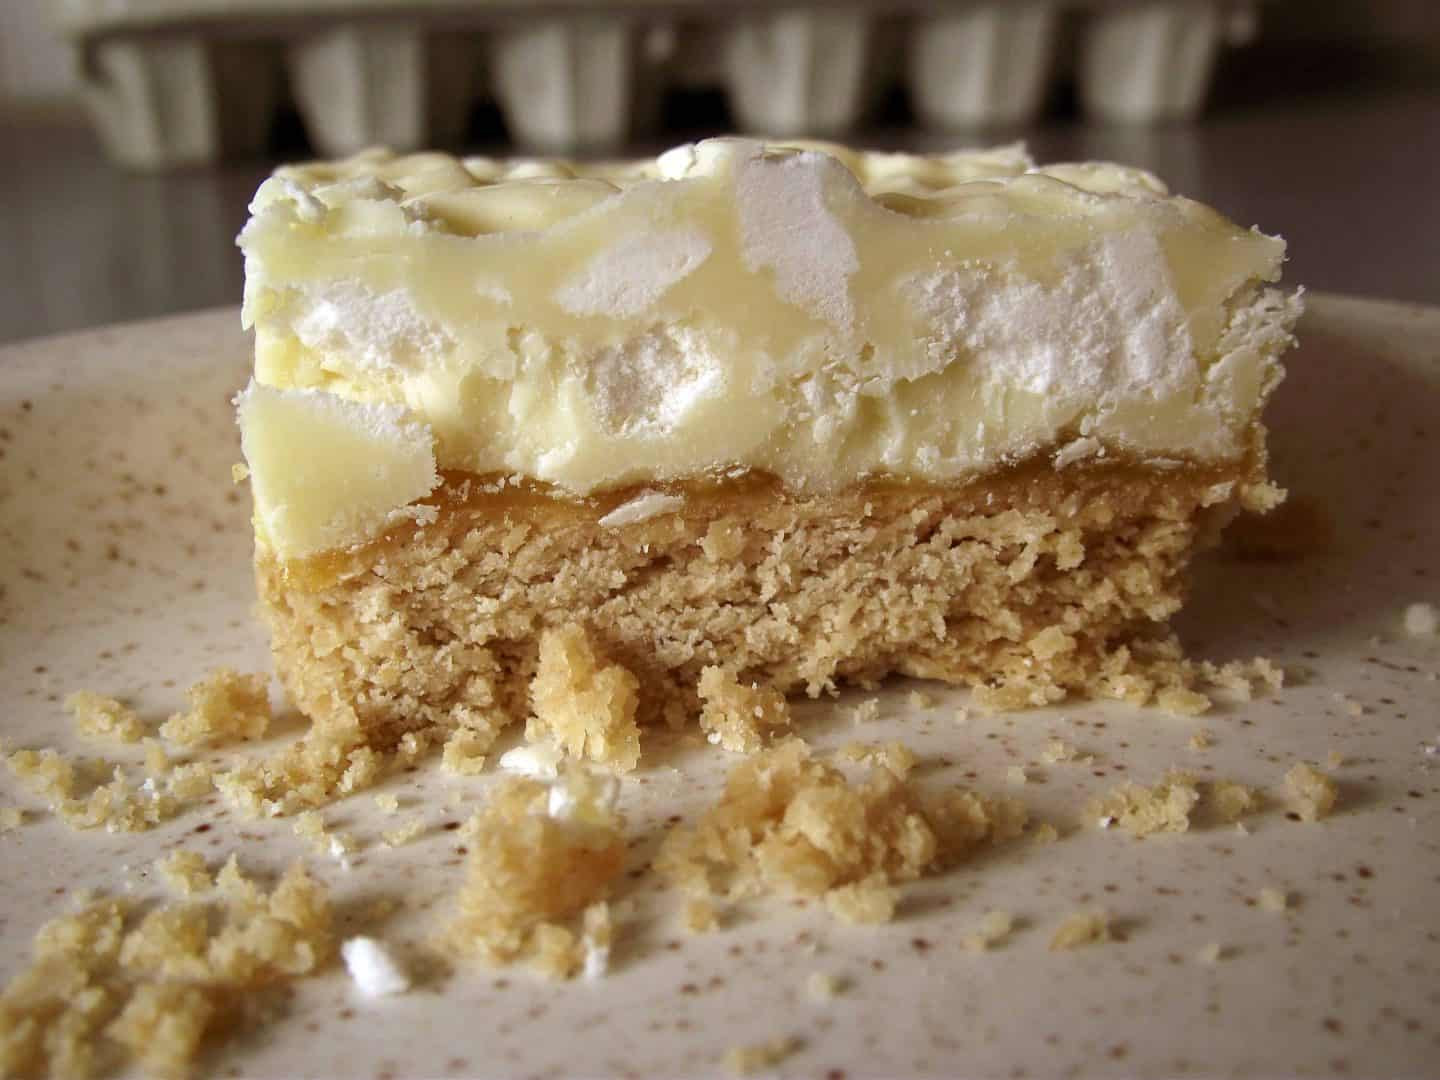 A tangy treat: gluten free lemon meringue shortbread